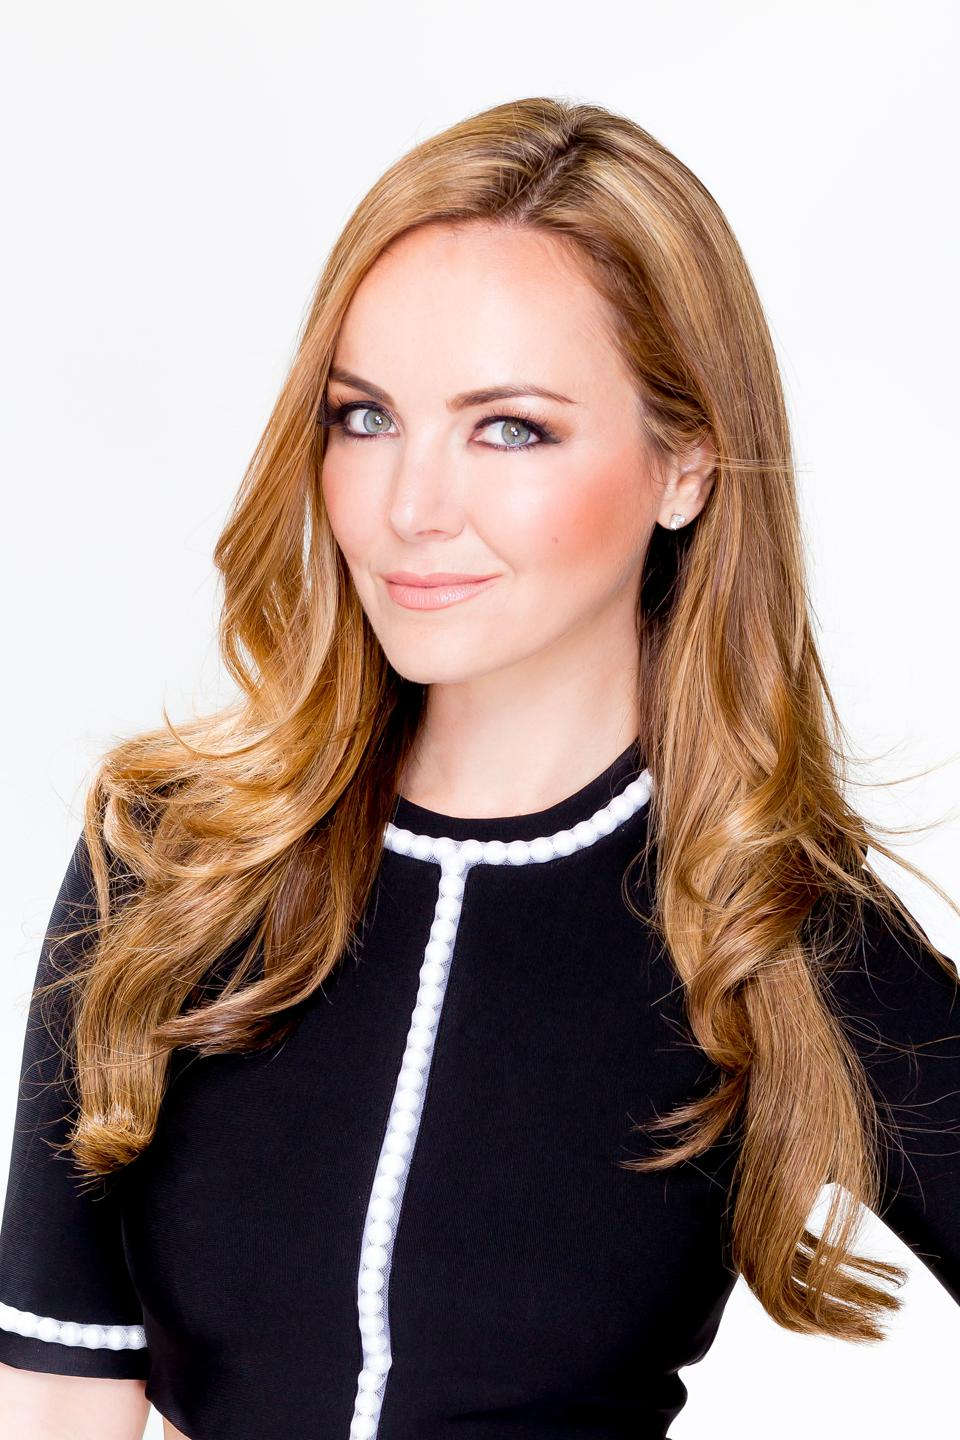 Nicole Lapin, New York Times bestselling author